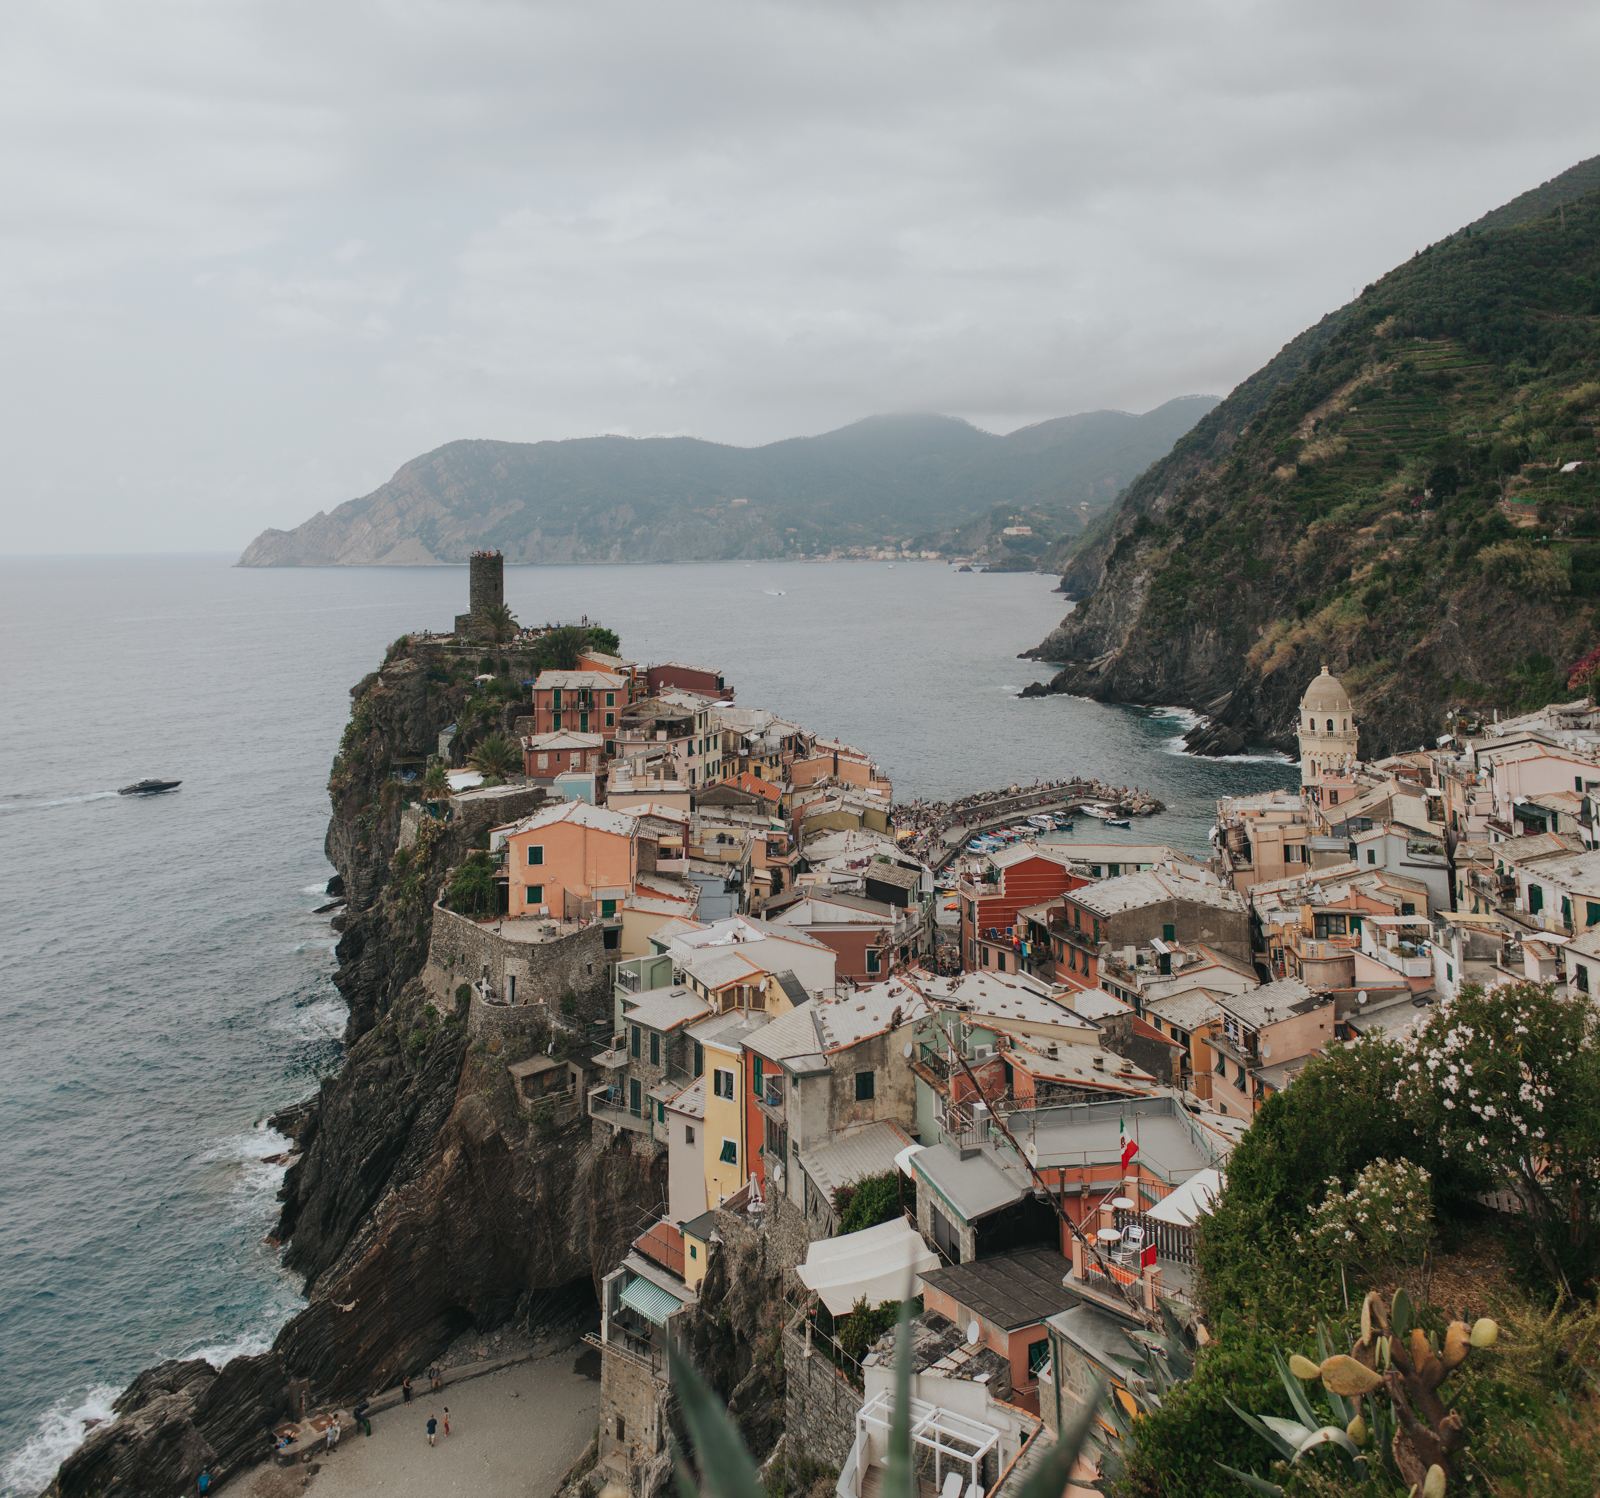 View of Vernazza, Cinque Terre, Italy from the hiking trail above the town.